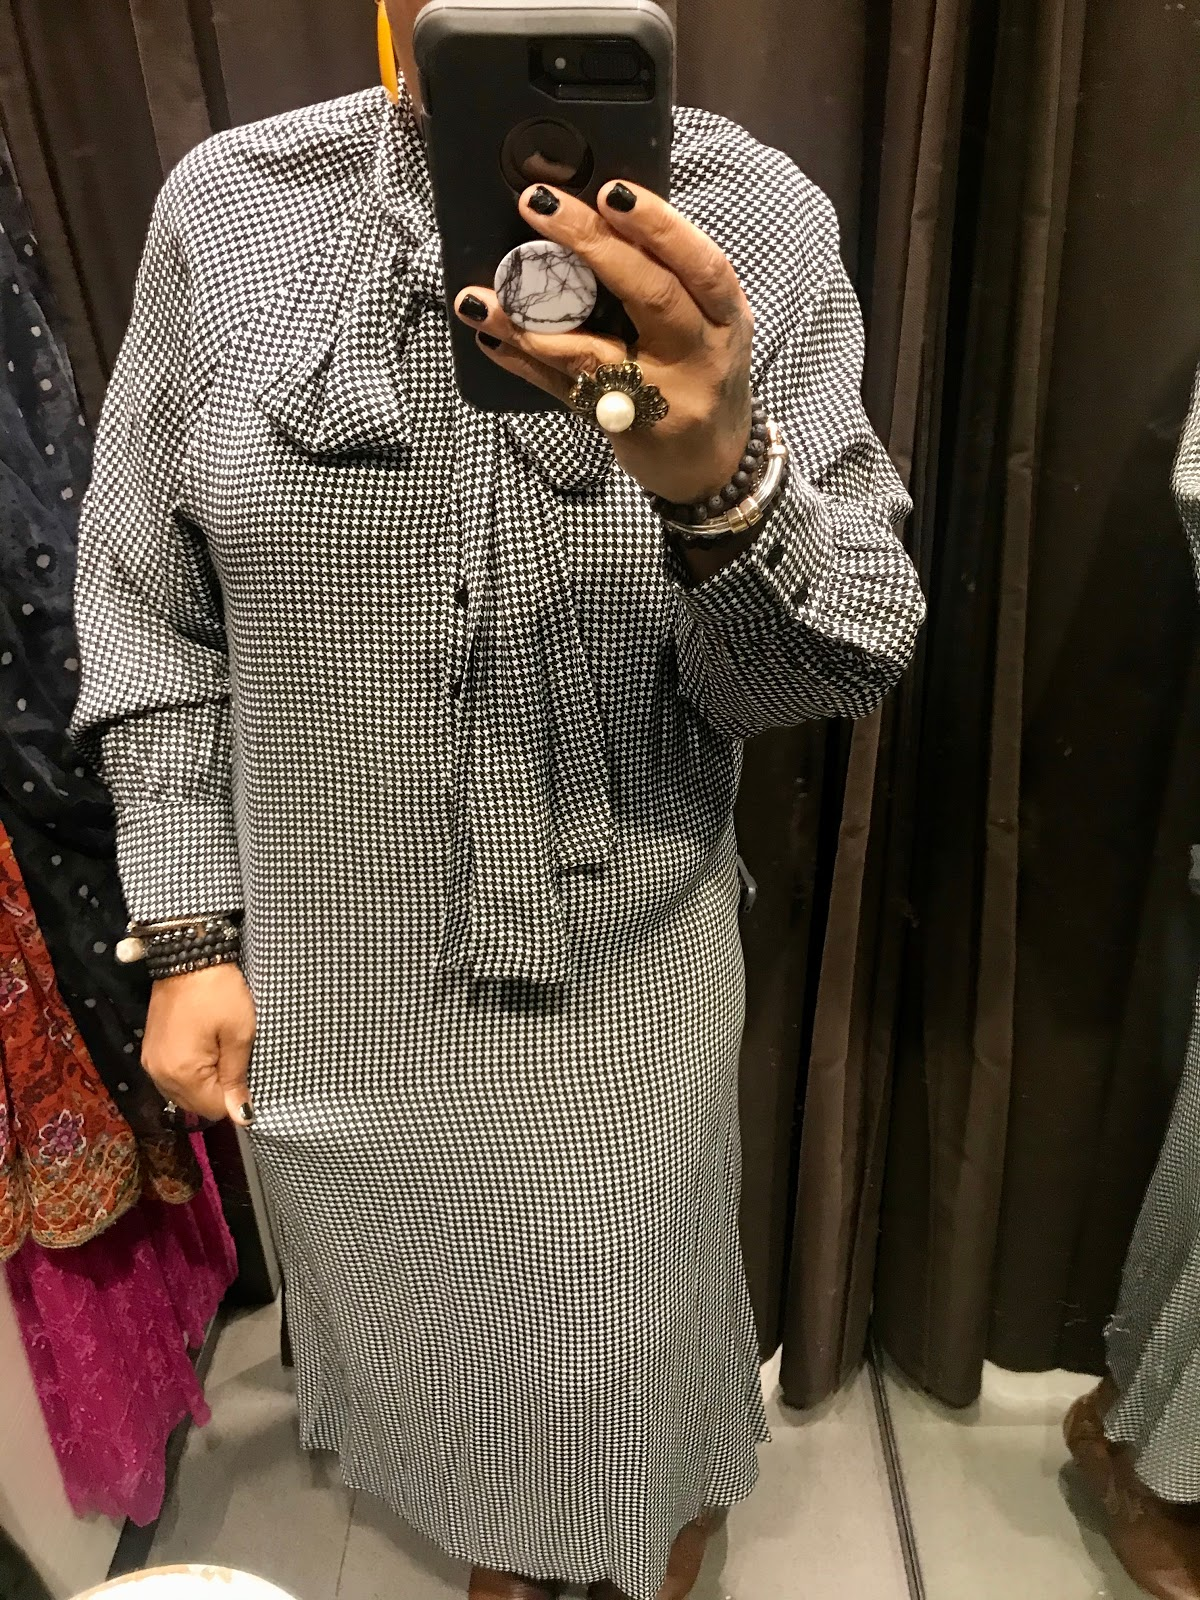 Black and White try on Dress from Zara Store in Dallas Texas